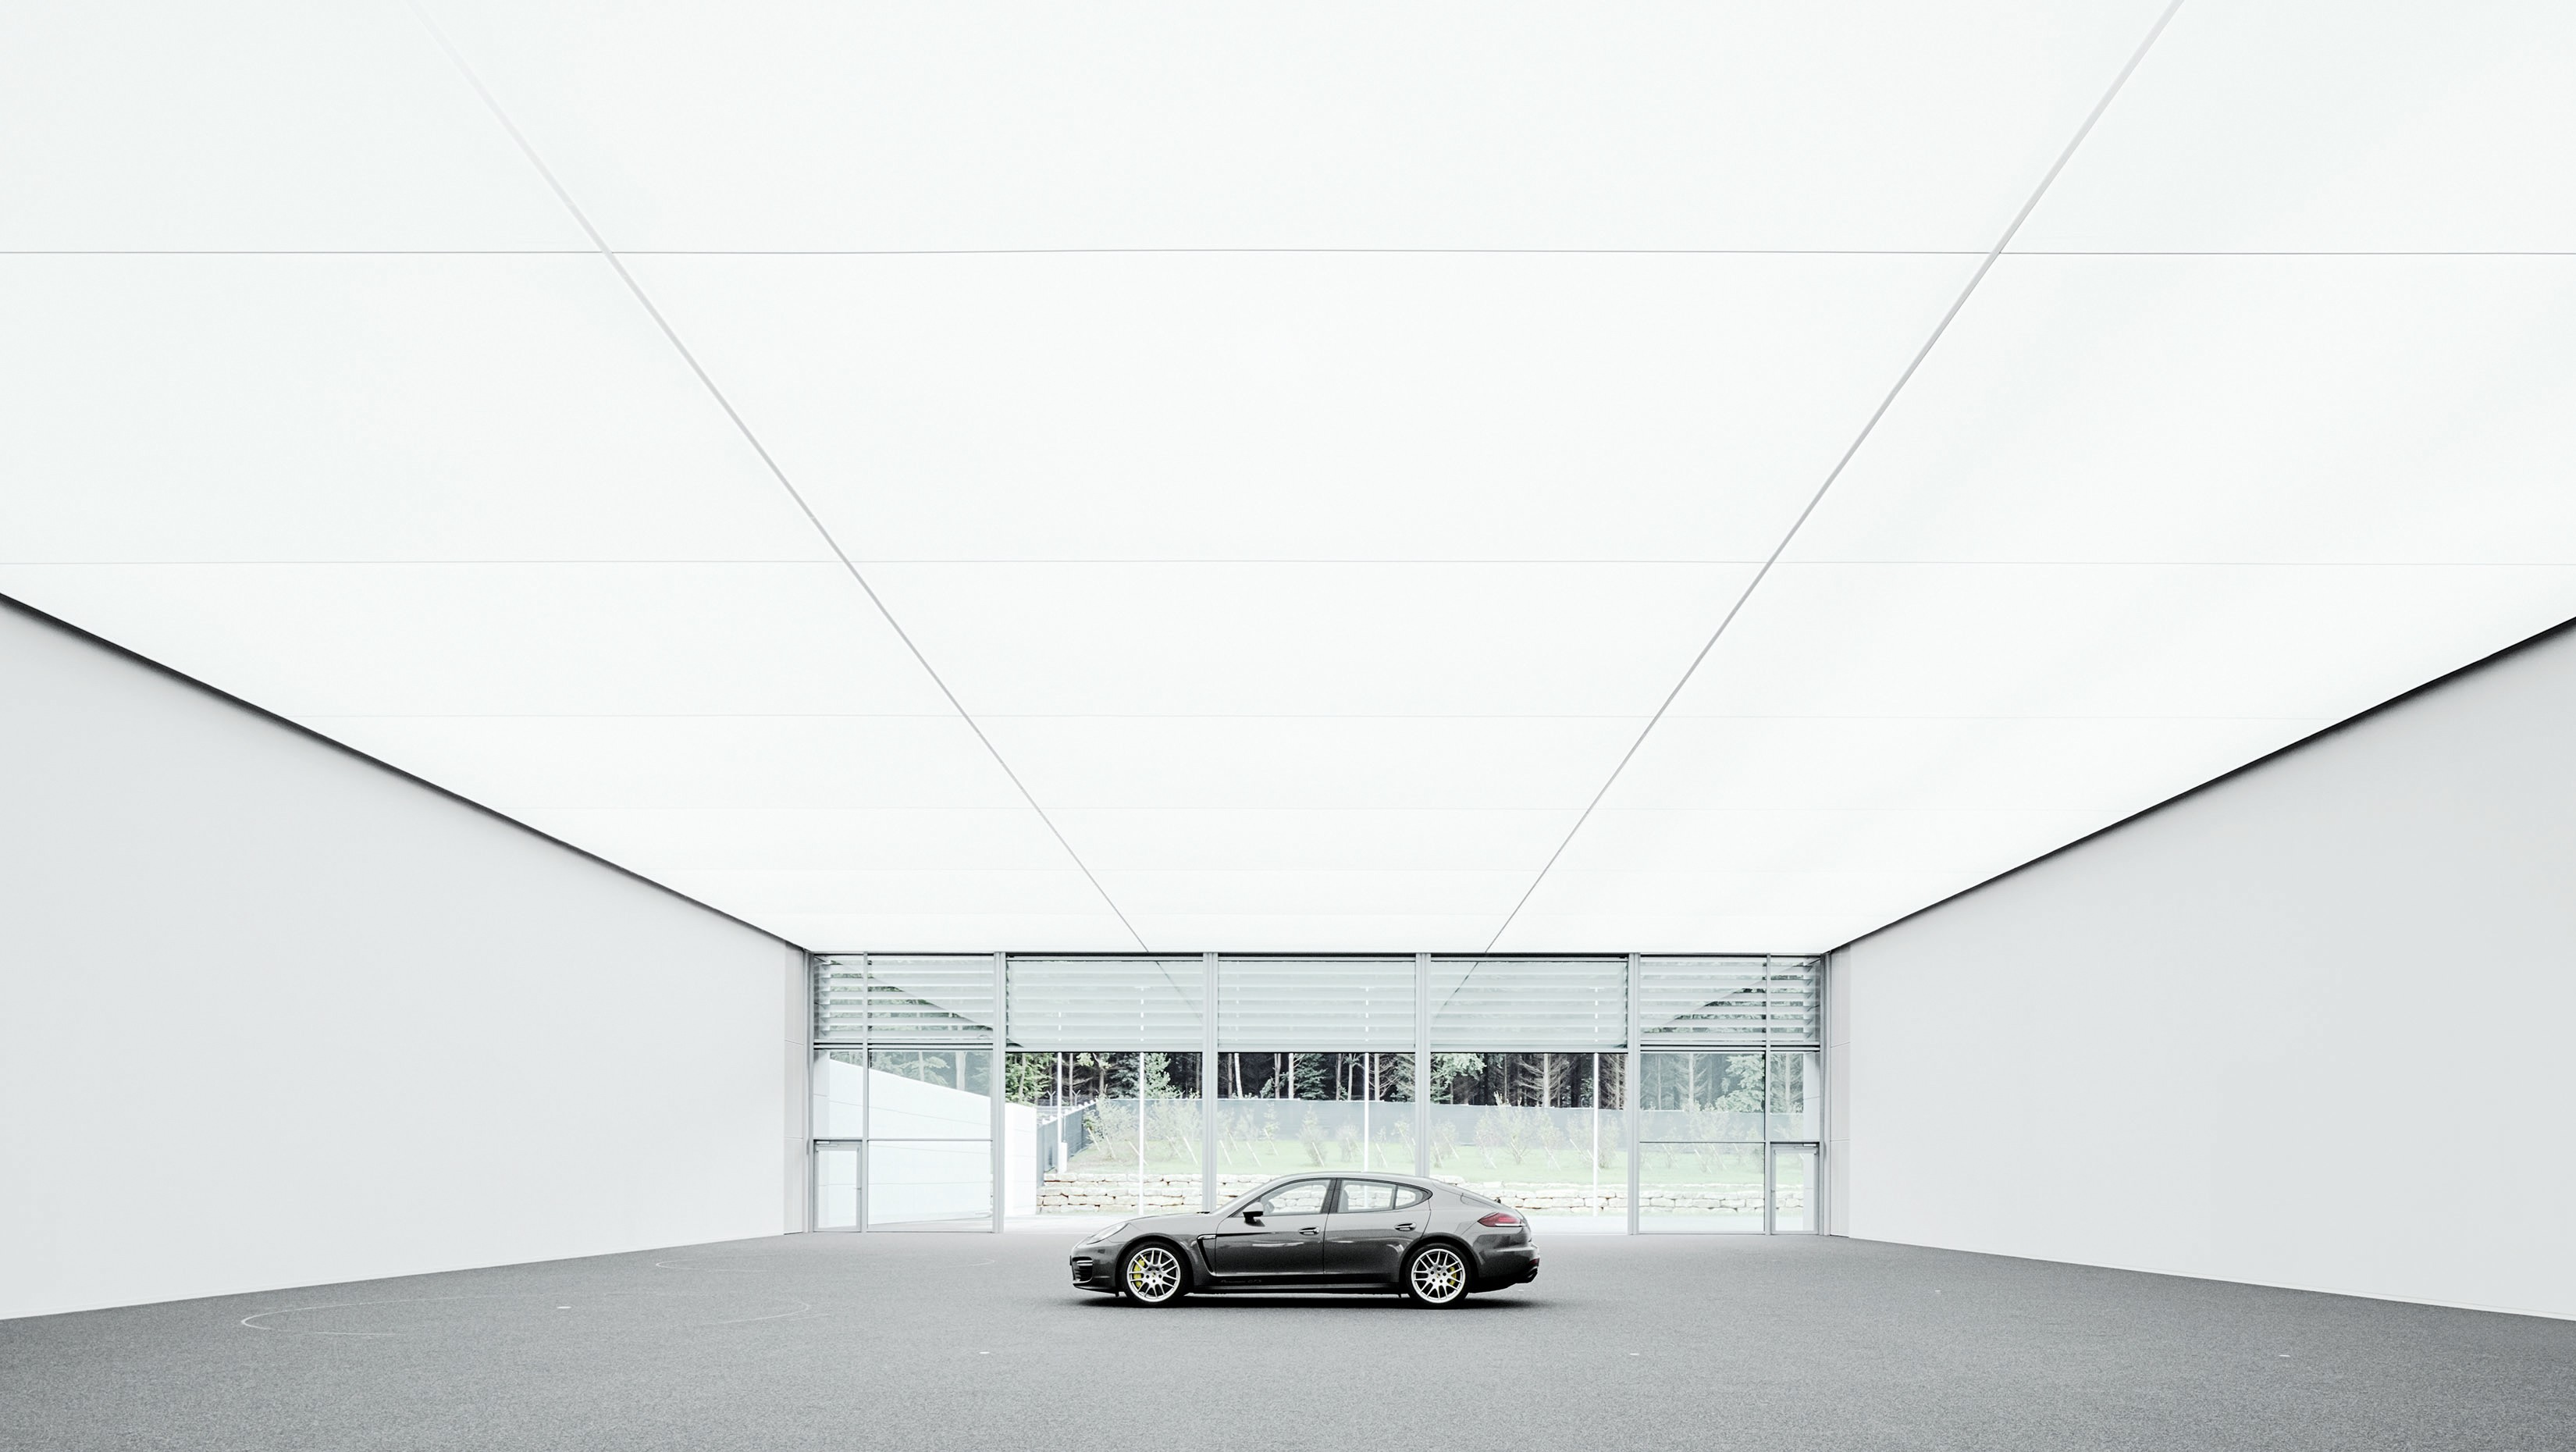 Design Studio Stuttgart Porsches Room With A View Driveeuropenews